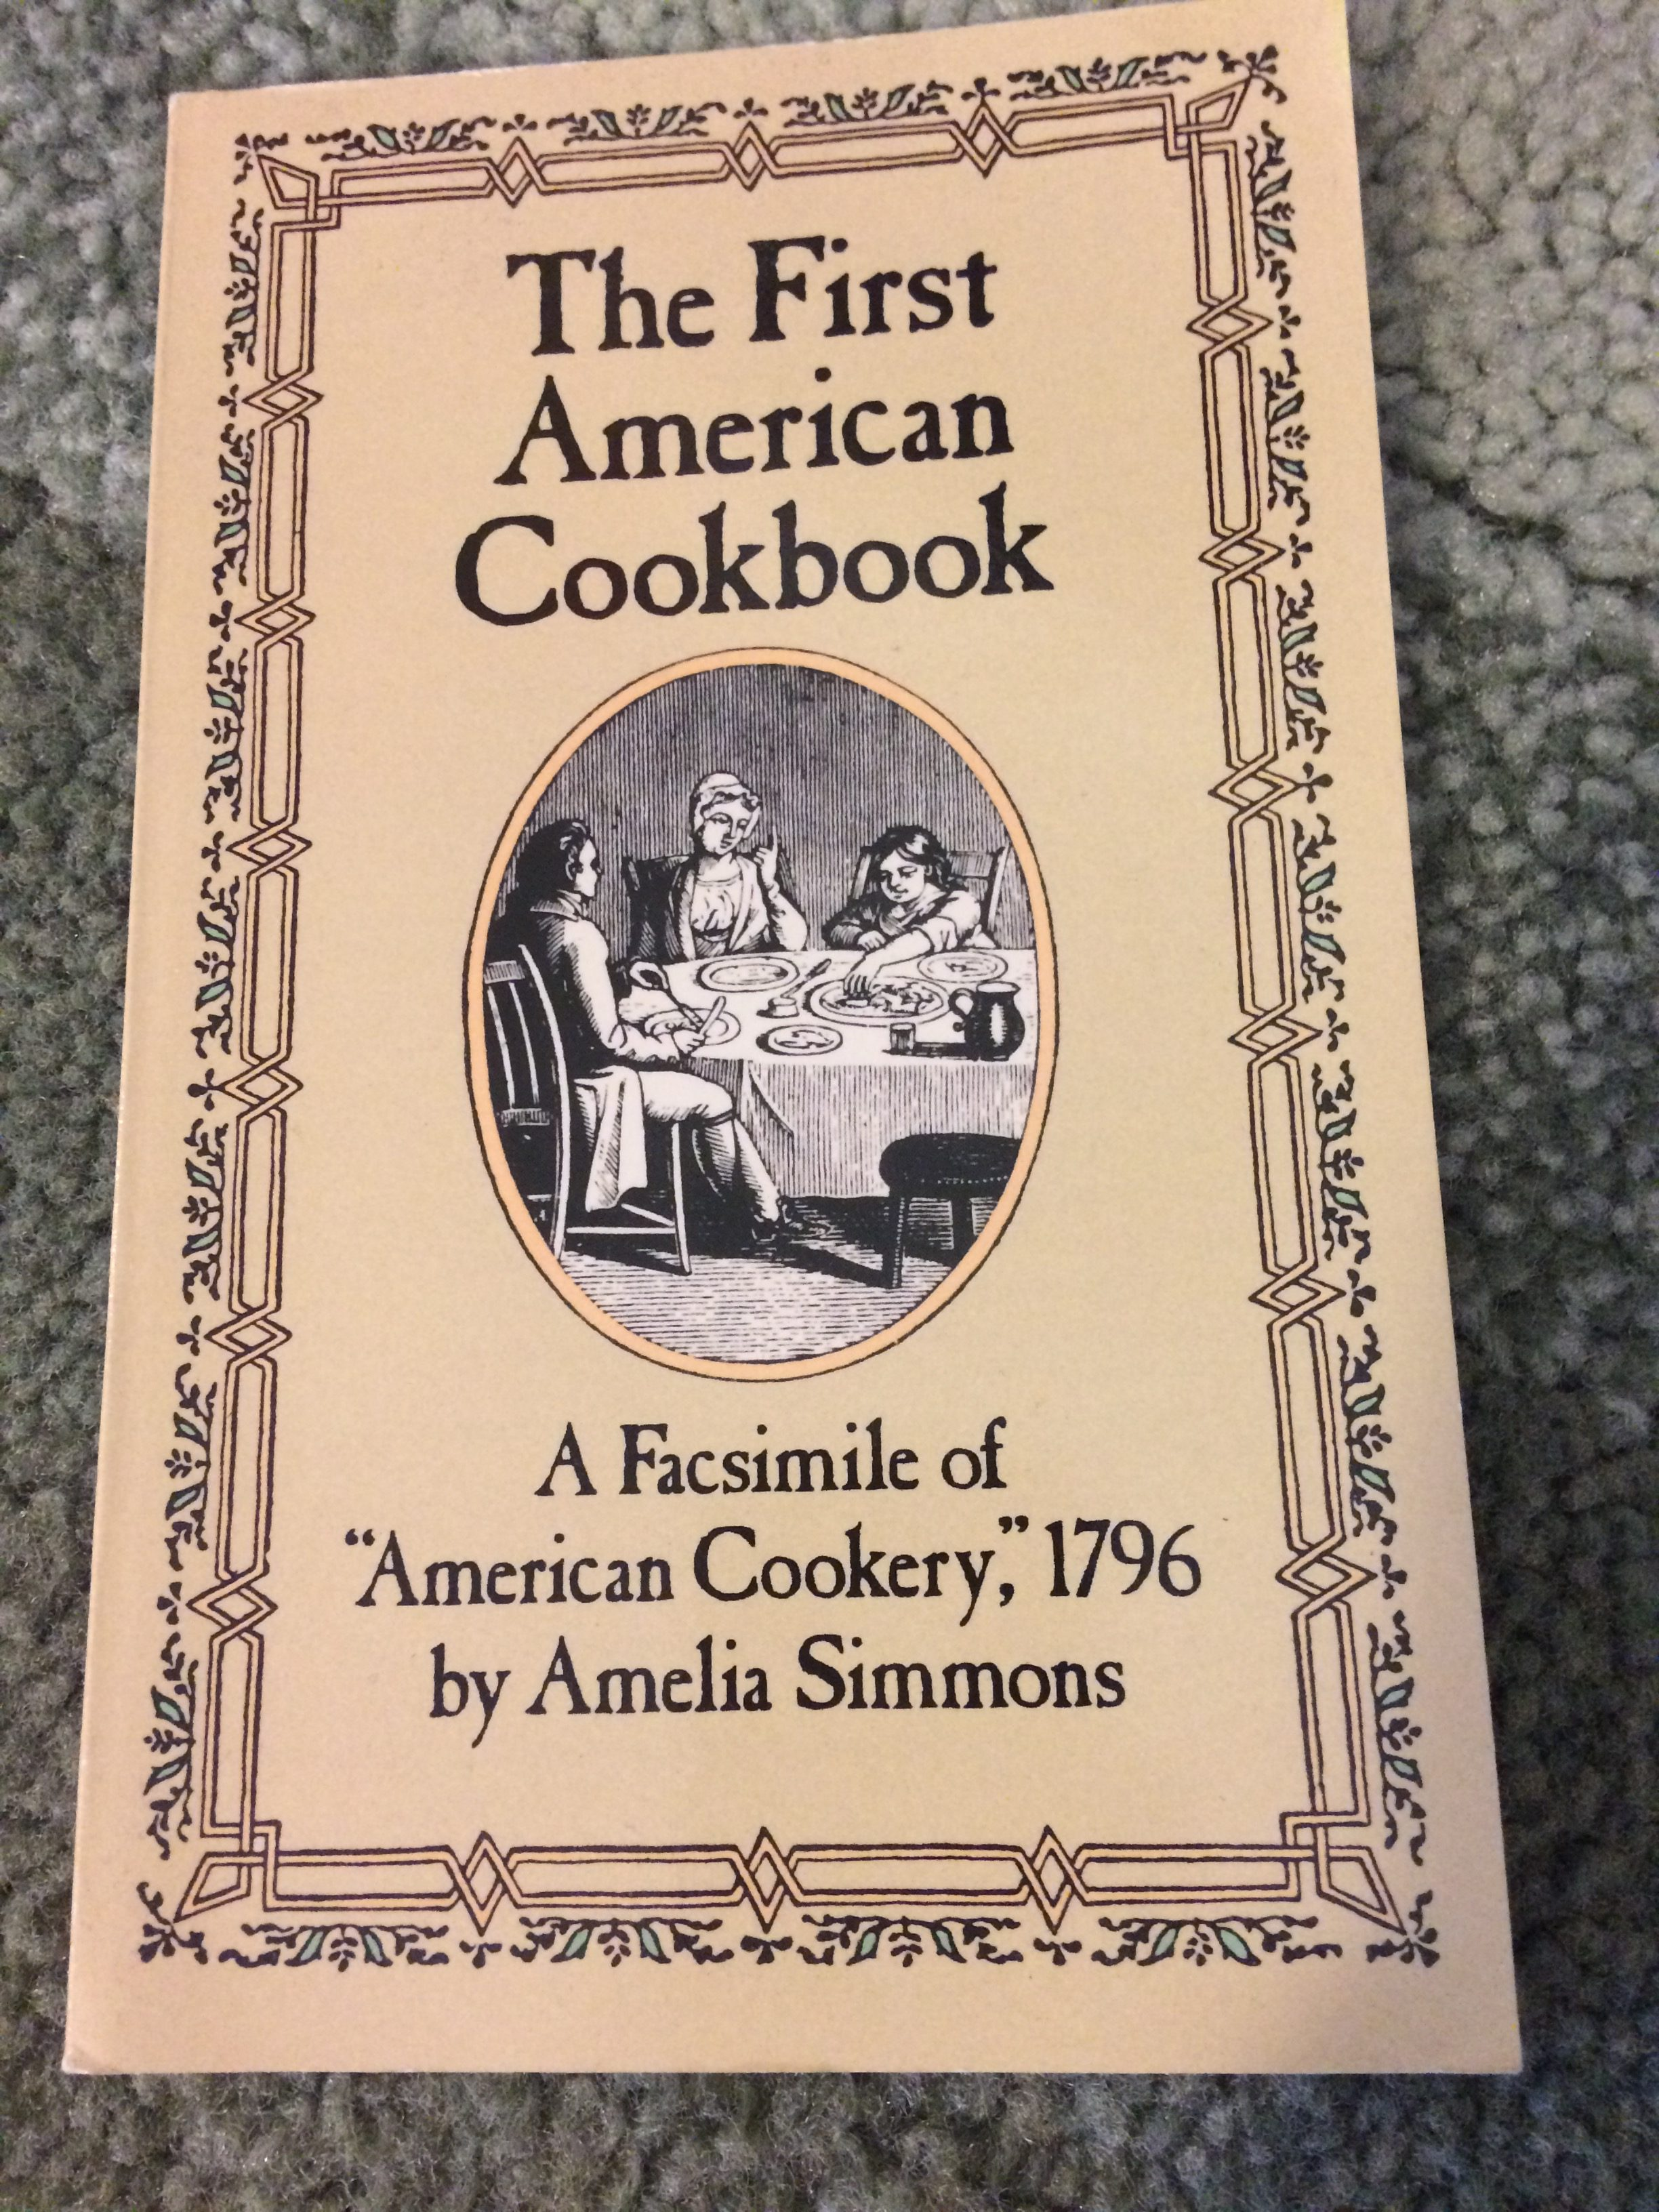 What was food like during colonial times in the US?